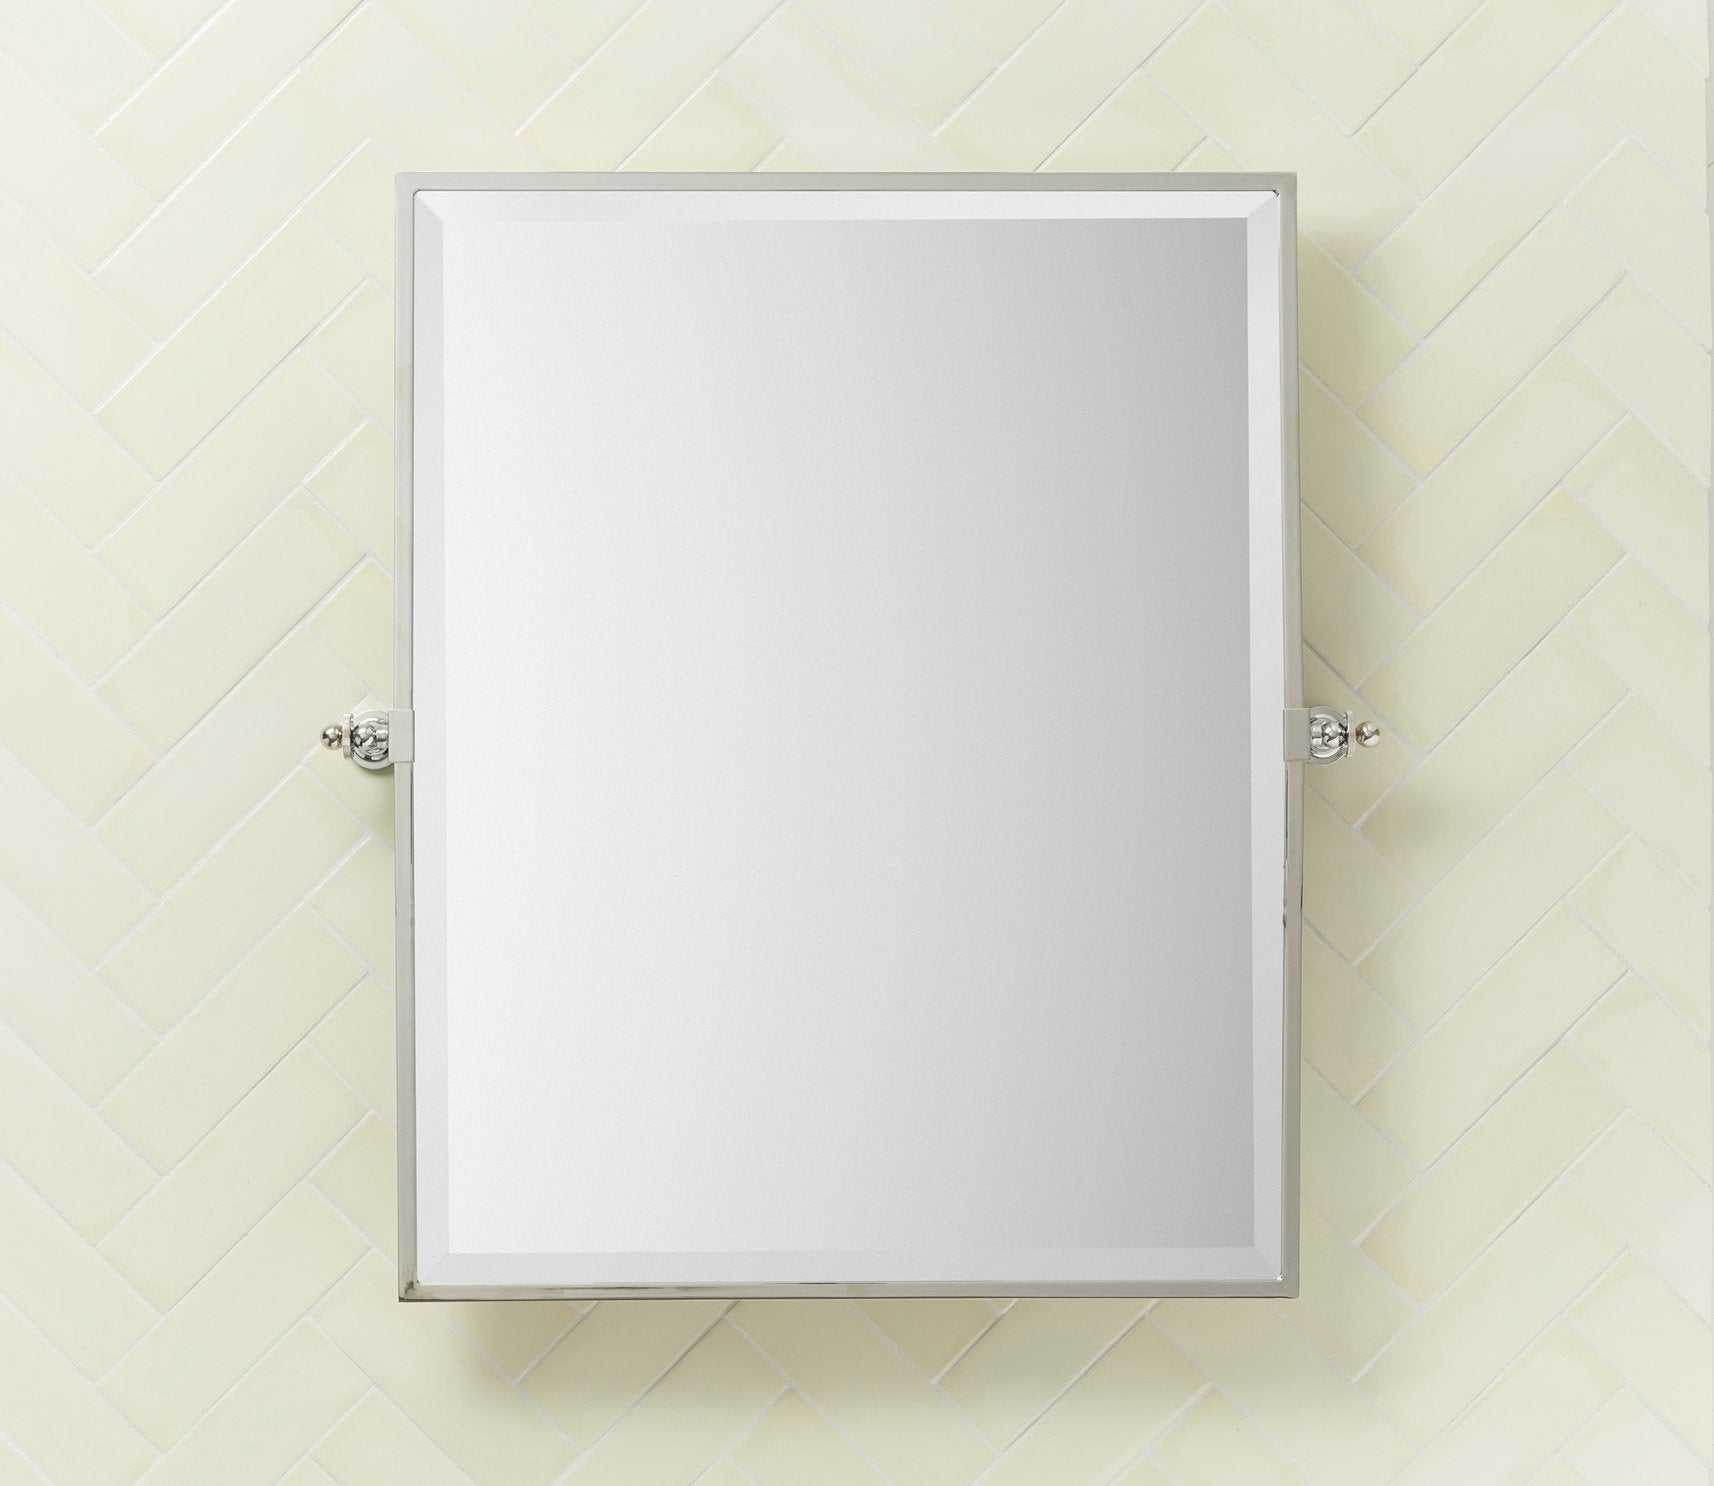 Hanbury Rectangle Tilting Mirror Product Image 1